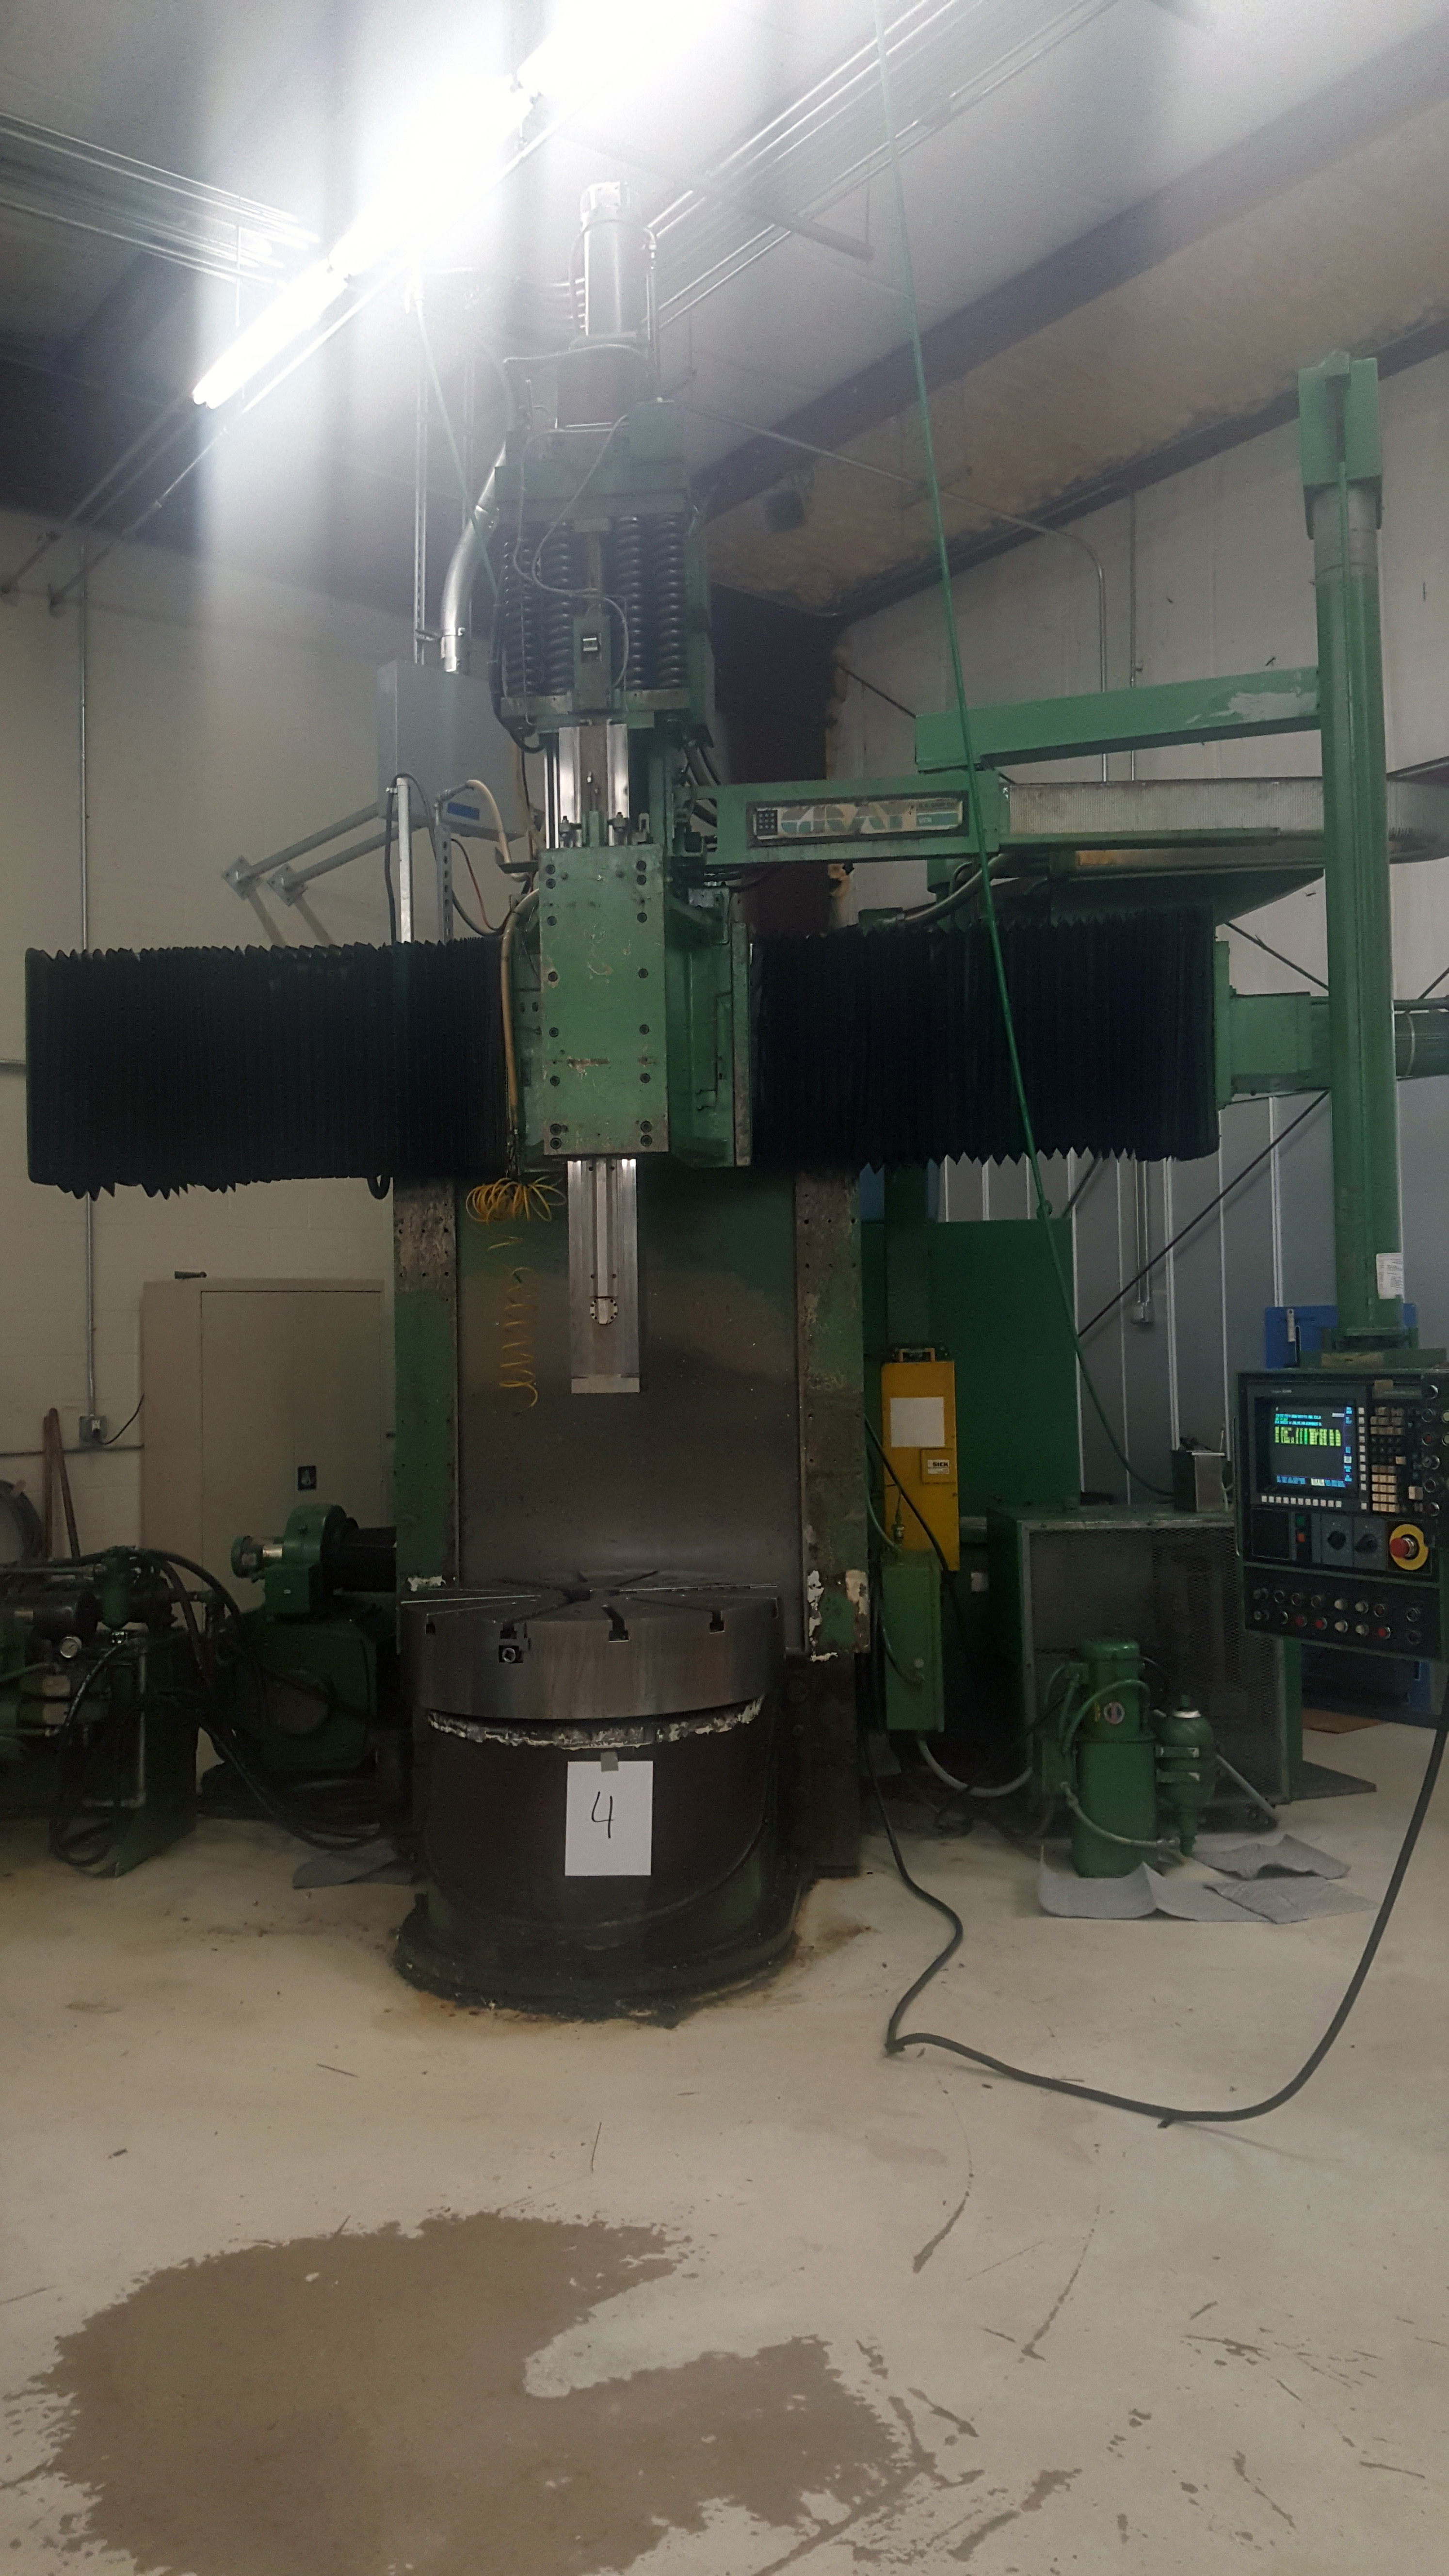 """Gray 42"""" table CNC Vertical Turing and boring lathe, Allen Bradley 8200 control, under power - Image 2 of 16"""